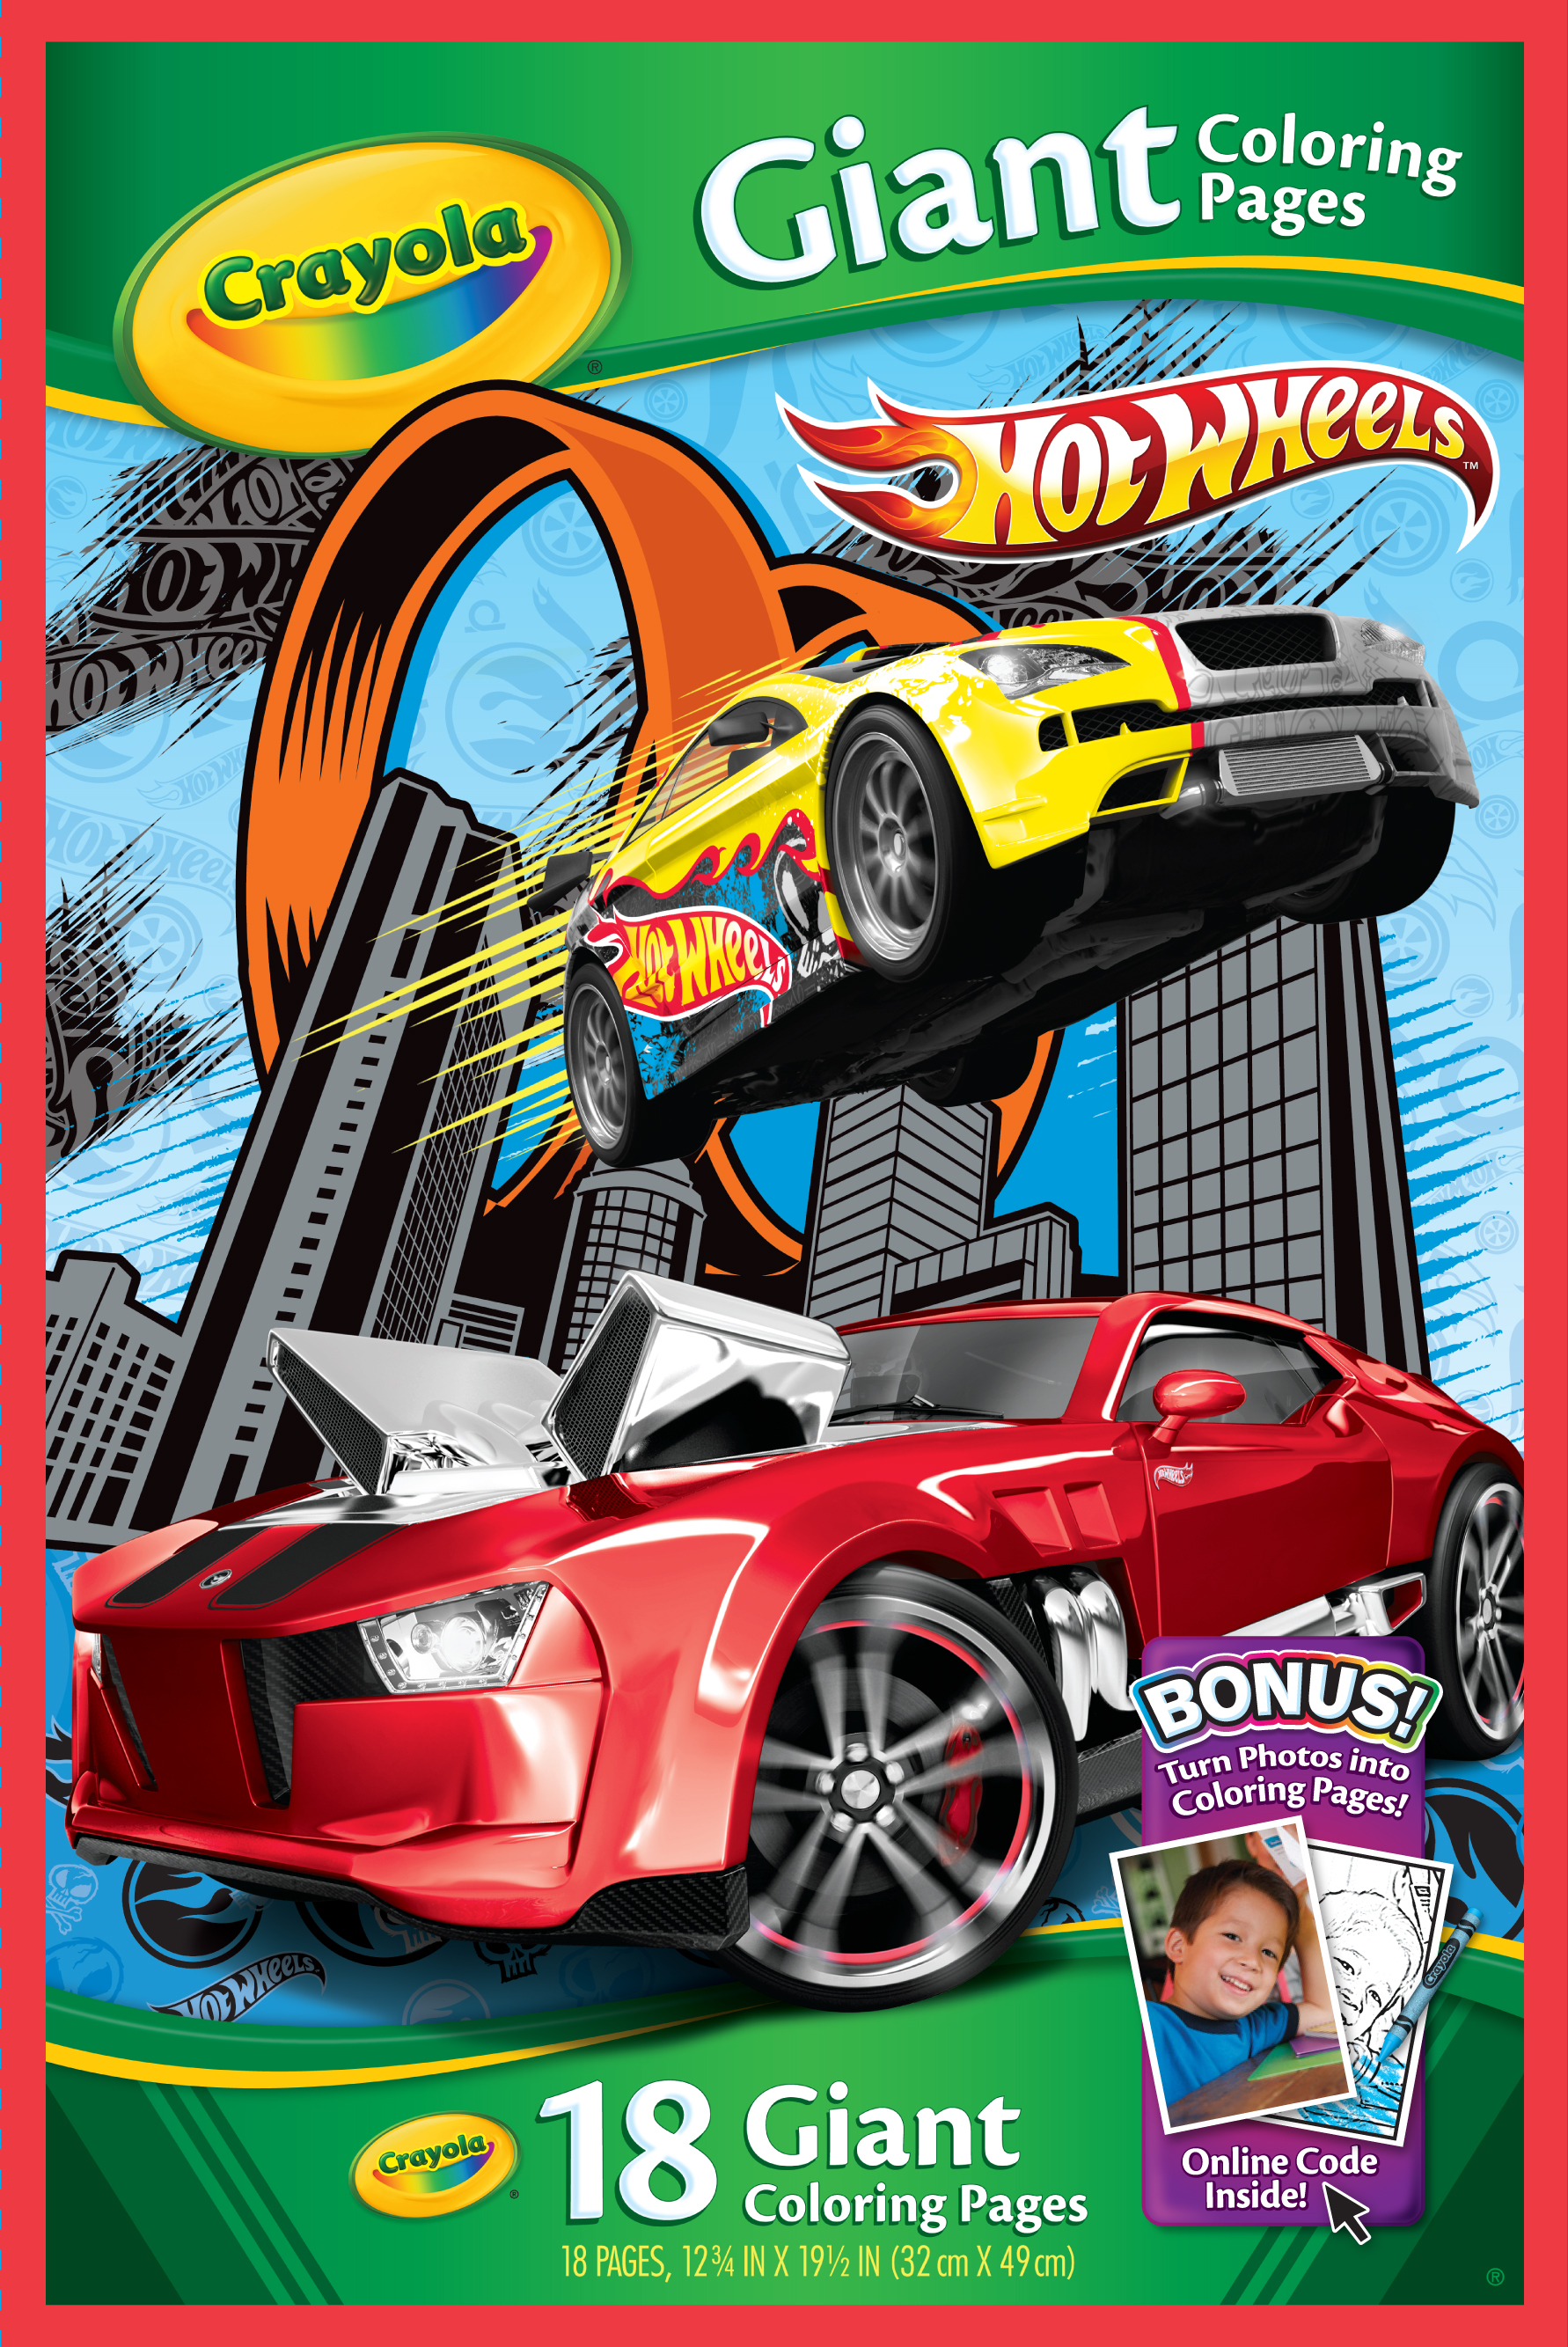 crayola giant coloring pages  Coloring Pages